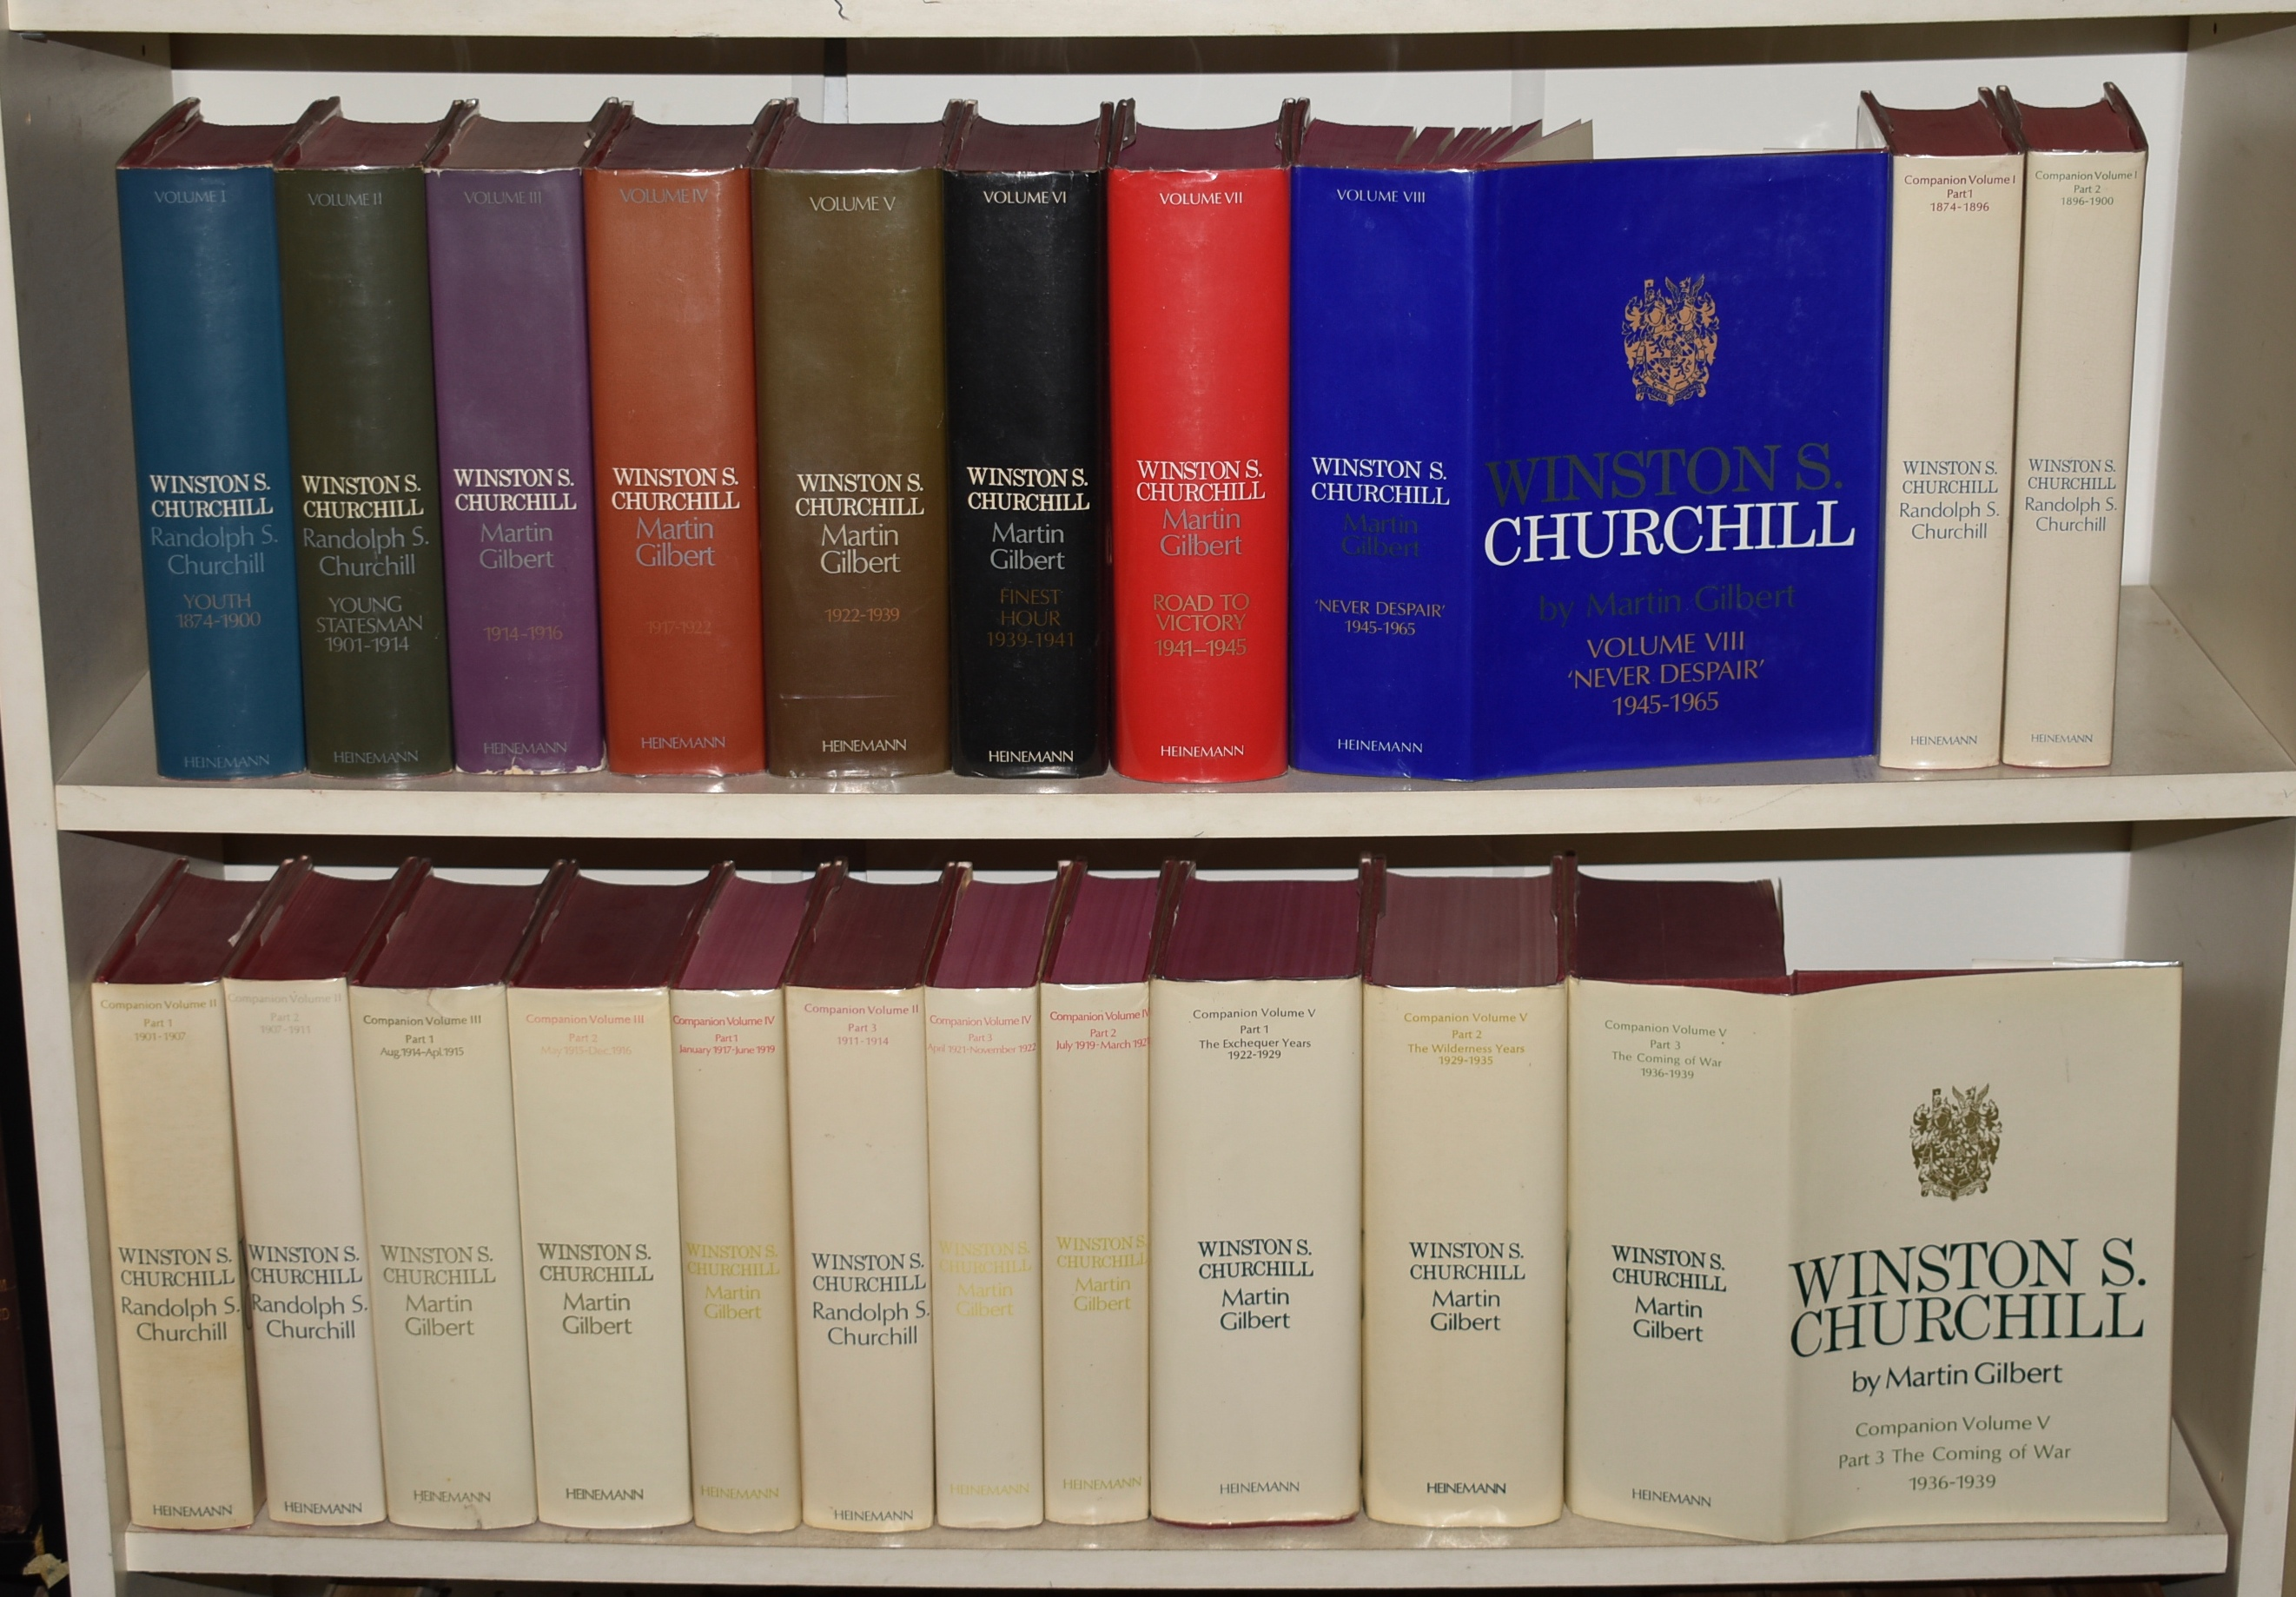 Image for Winston S.Churchill 1874 - 1965. Complete 21 Volume Set. The Complete 8 Volumes Of The Main Narrative, Covering The Entire Period Of Churchill's Life, 1874-1965; Plus The First 13 Companion Volumes, Which Go Up To 1939. 21 Vols. [Vol I: Youth 1874-1900, +2 Companion Vols; Vol II: Young Statesman 1901-1914, +3 Companion Vols; Vol III: 1914-1916, +2 Companion Vols; Vol IV: 1917-1922, +3 Companion Vols; Vol V: 1922-1939, +3 Companion Vols; Vol VI: Finest Hour 1939-1941; Vol VII: Road To Victory 1941-1945; Vol VIII: 'Never Despair' 1945-1965.]